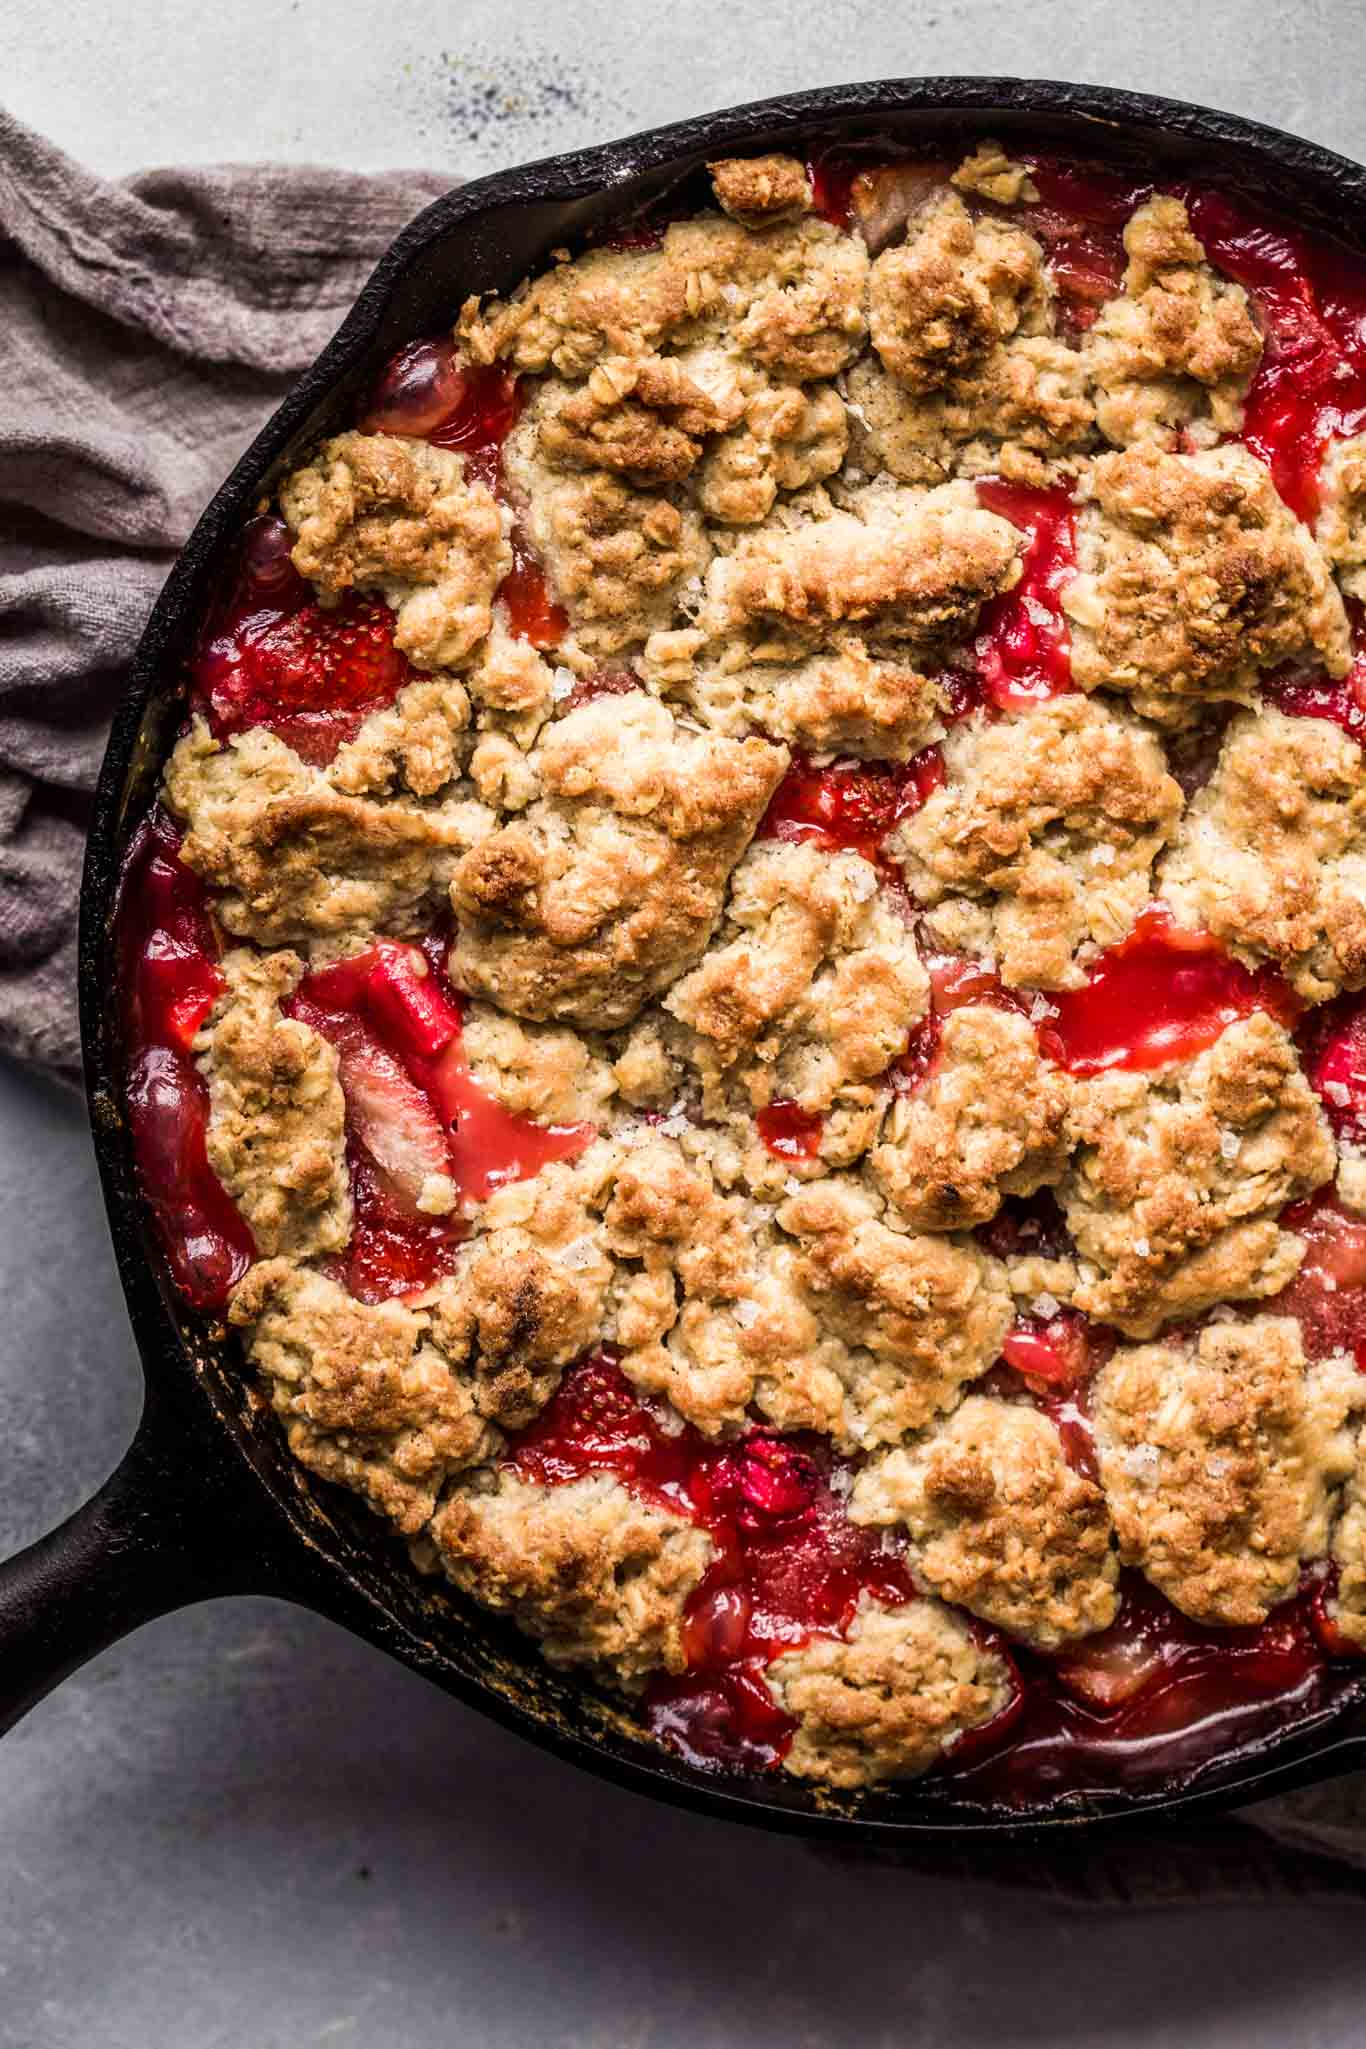 Cast iron strawberry rhubarb cobbler straight out of oven in cast iron skillet